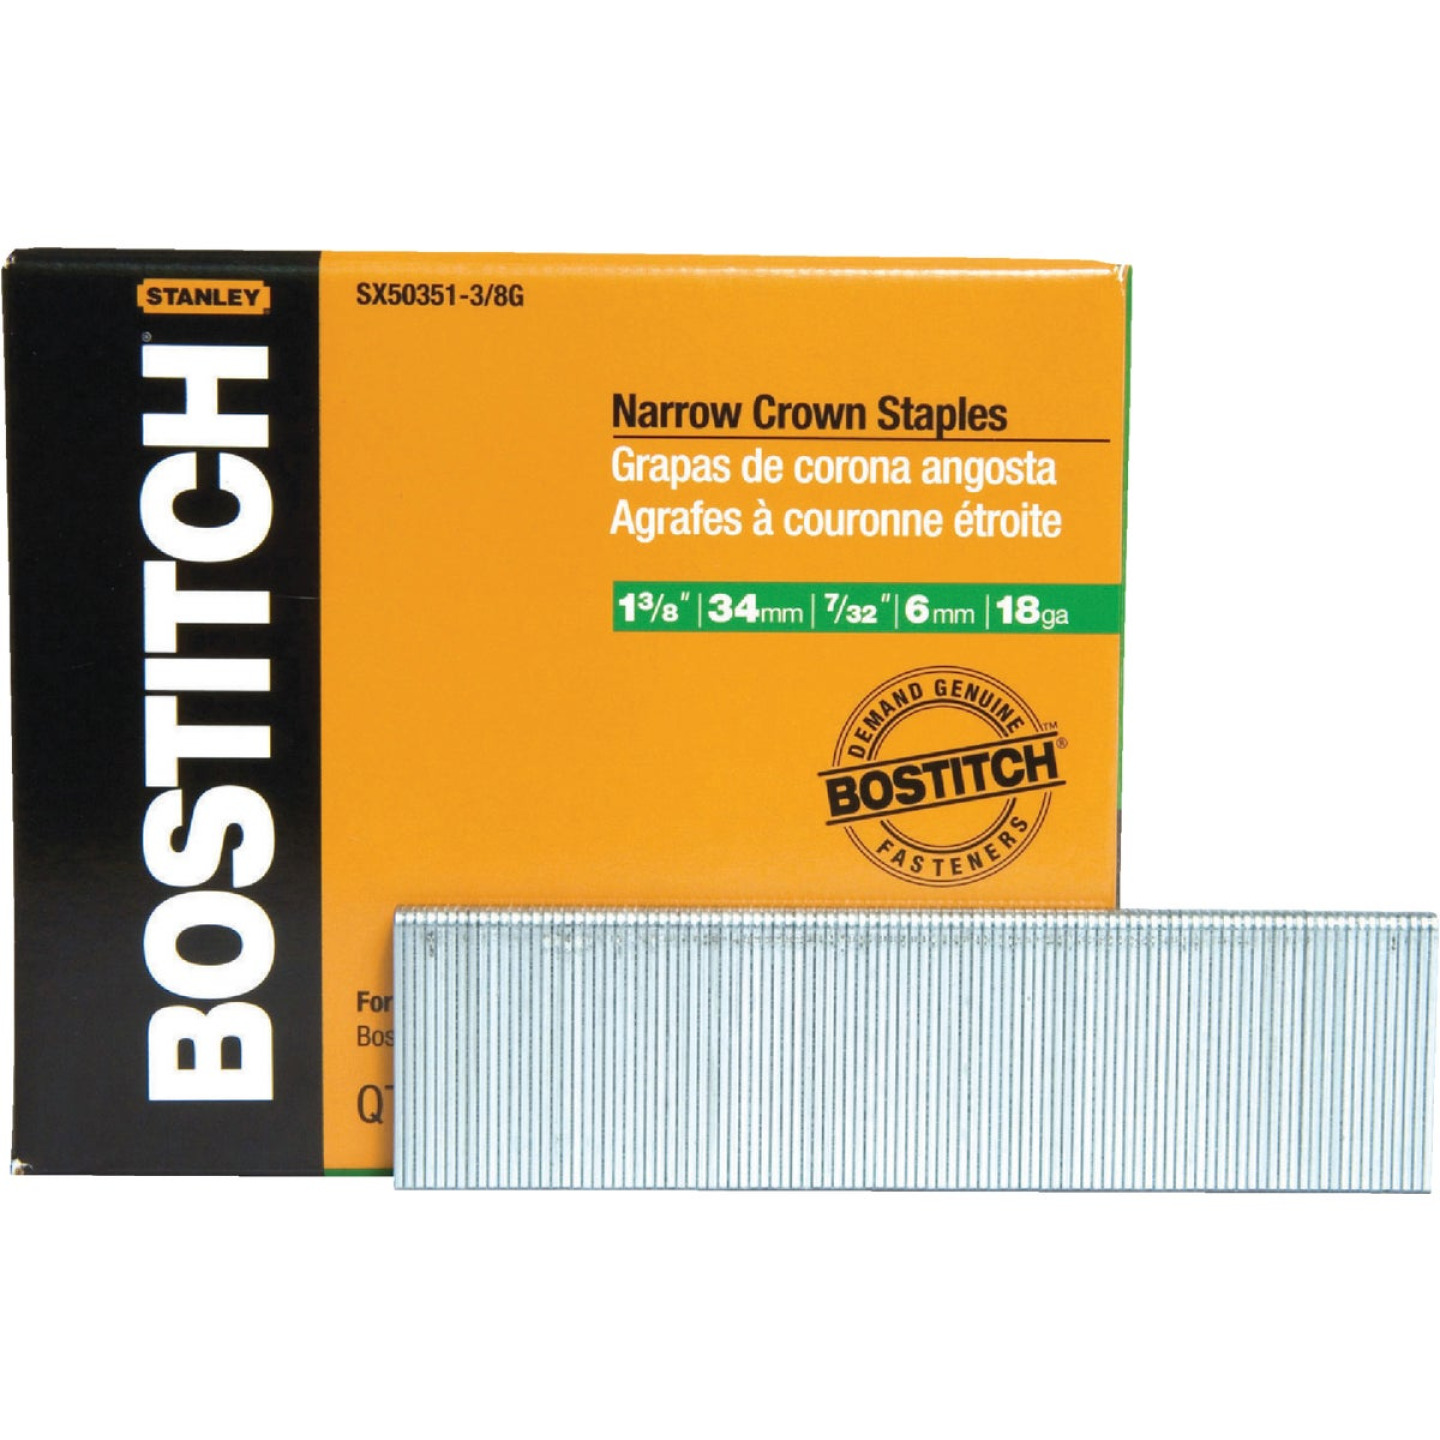 Bostitch 18-Gauge Galvanized Narrow Crown Finish Staple, 7/32 In. x 1-3/8 In. (3000 Ct.) Image 1